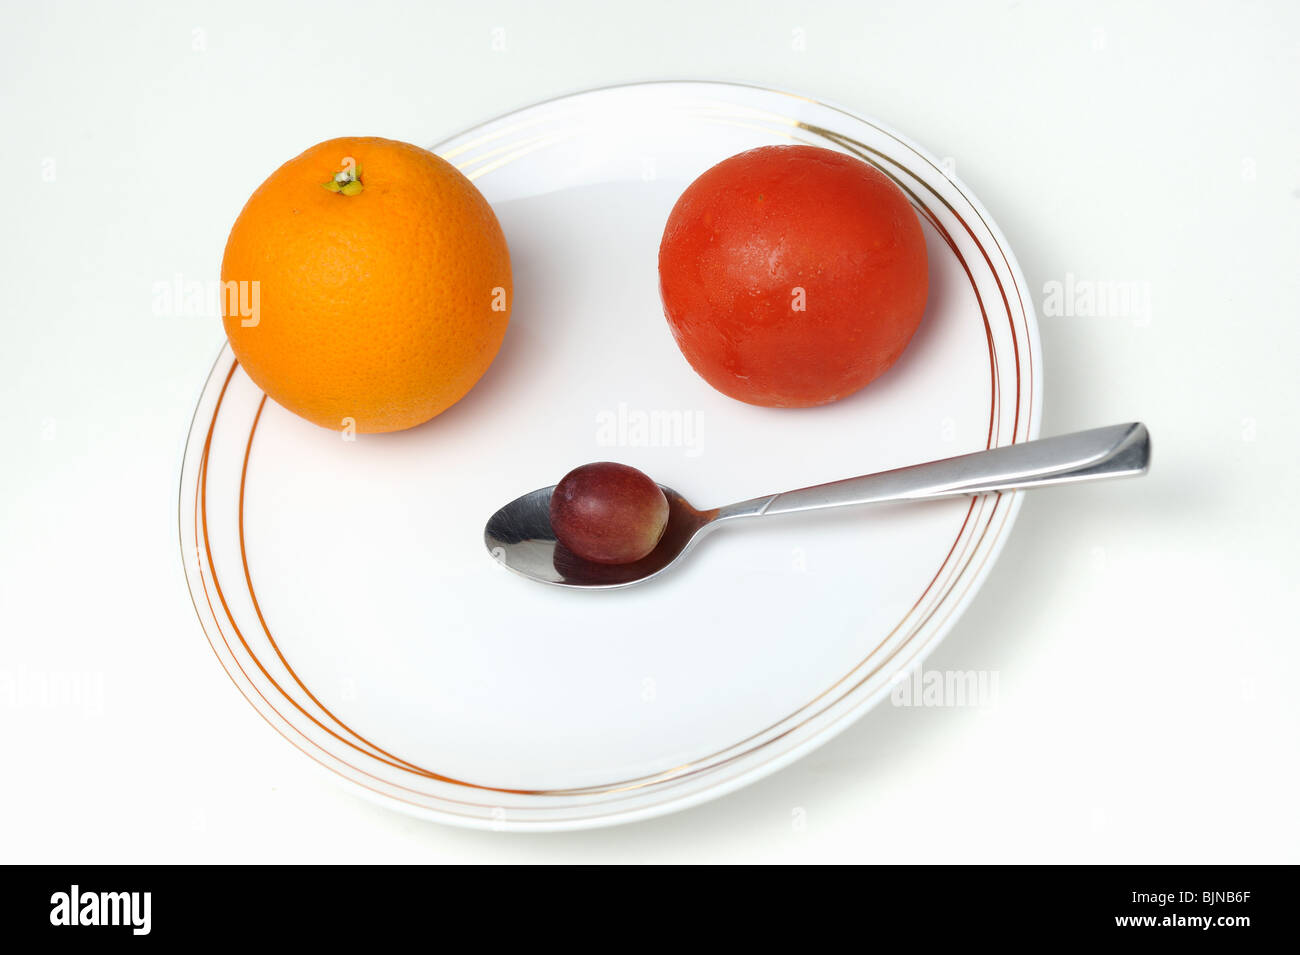 Plate and spoon with one Orange, one tomatoe, one grape, on white background - Stock Image